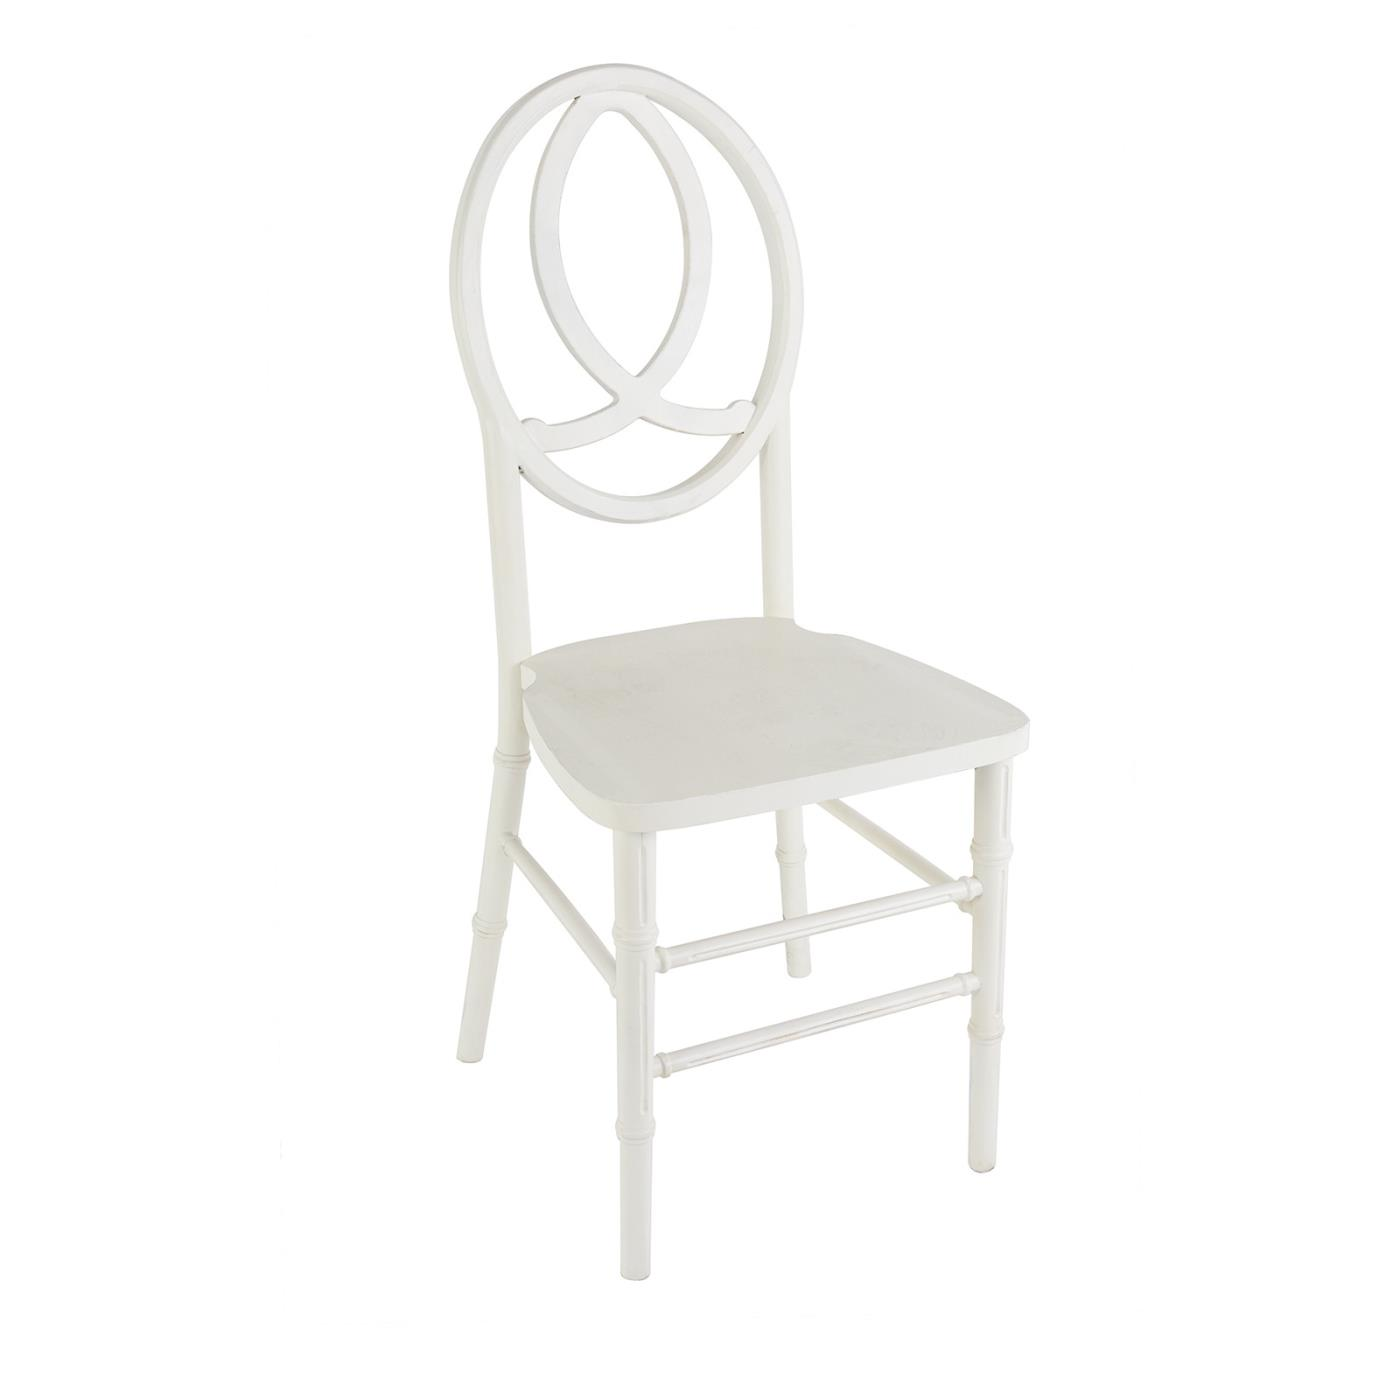 Omega Chair - White